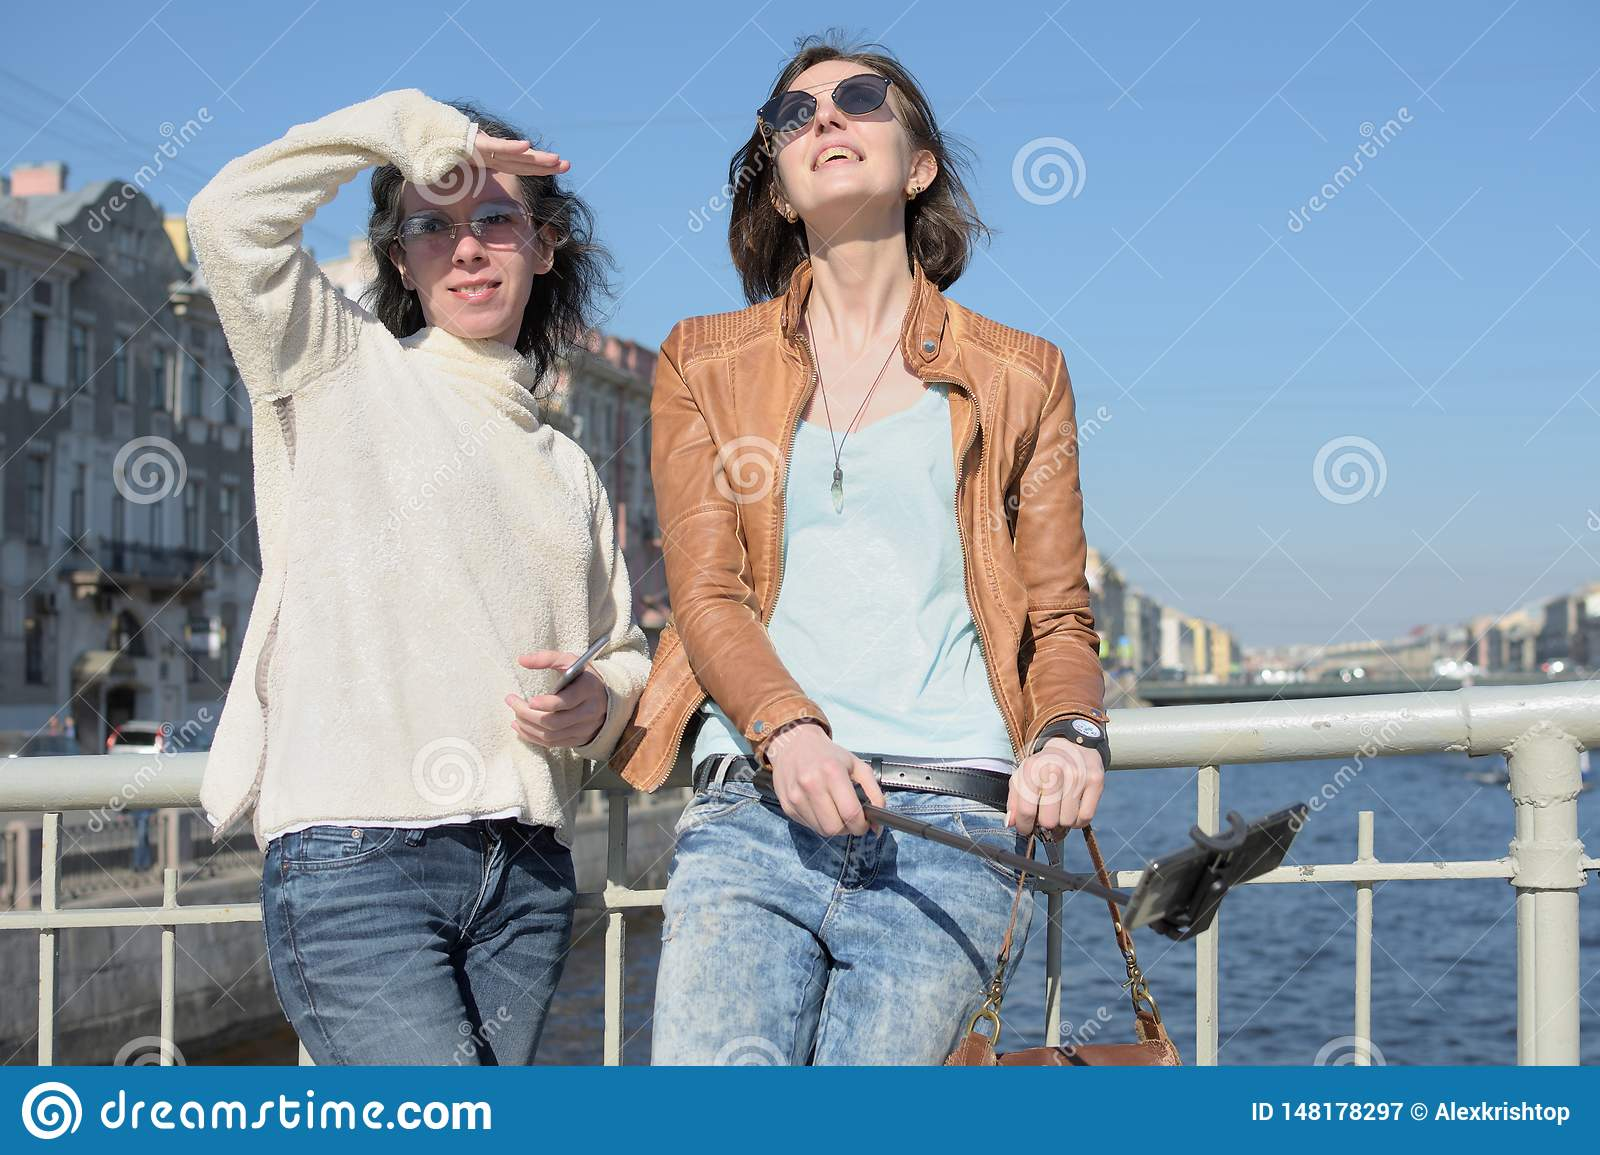 Young ladies tourists in Saint Petersburg Russia take selfies on a wooden bridge in the historical city center